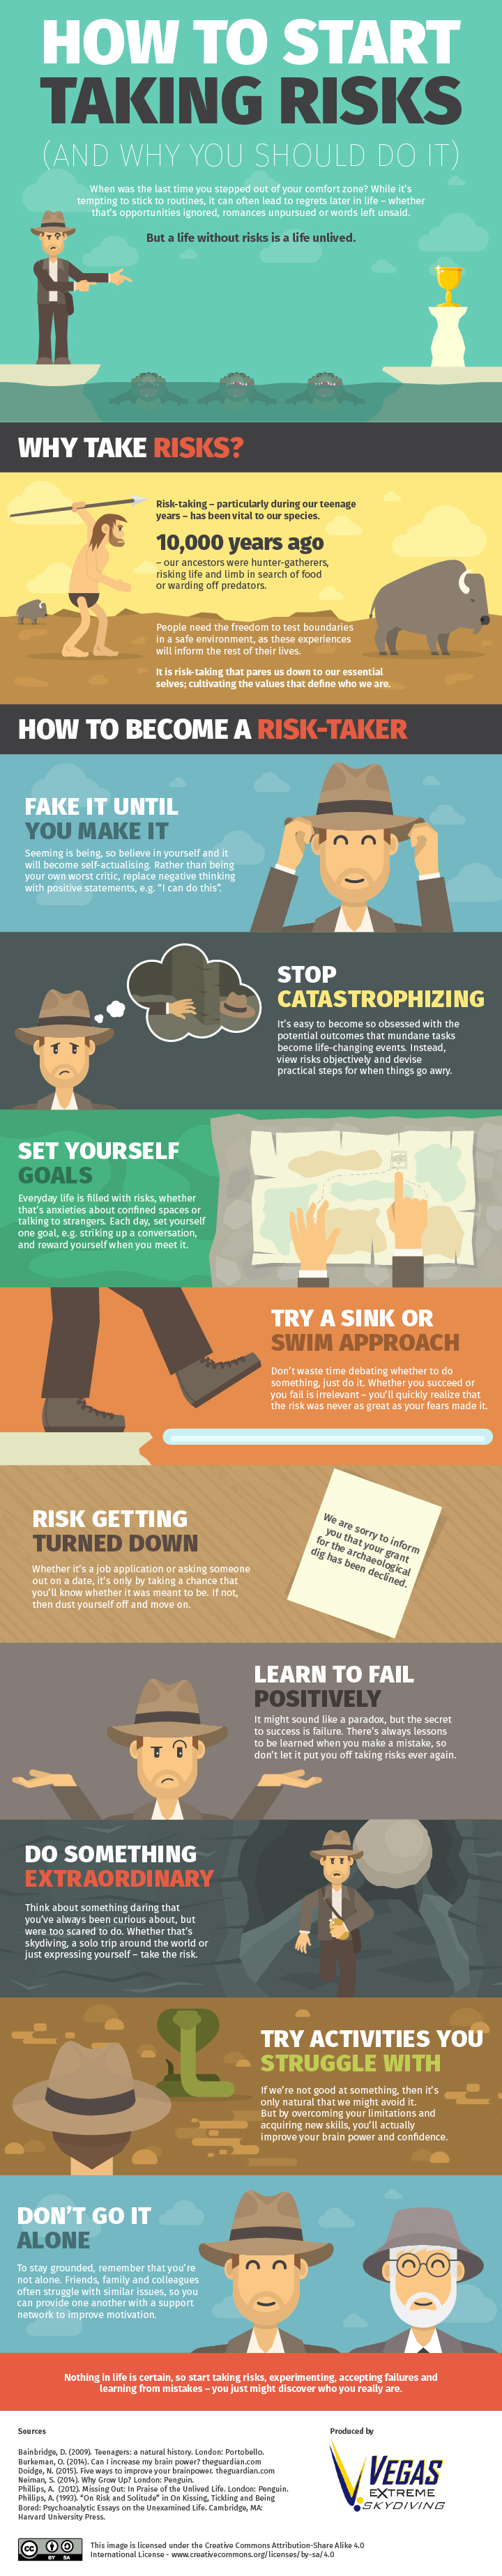 why take risks and how to become a risk taker infographic   infographic overcoming the fear of taking a risk just do it